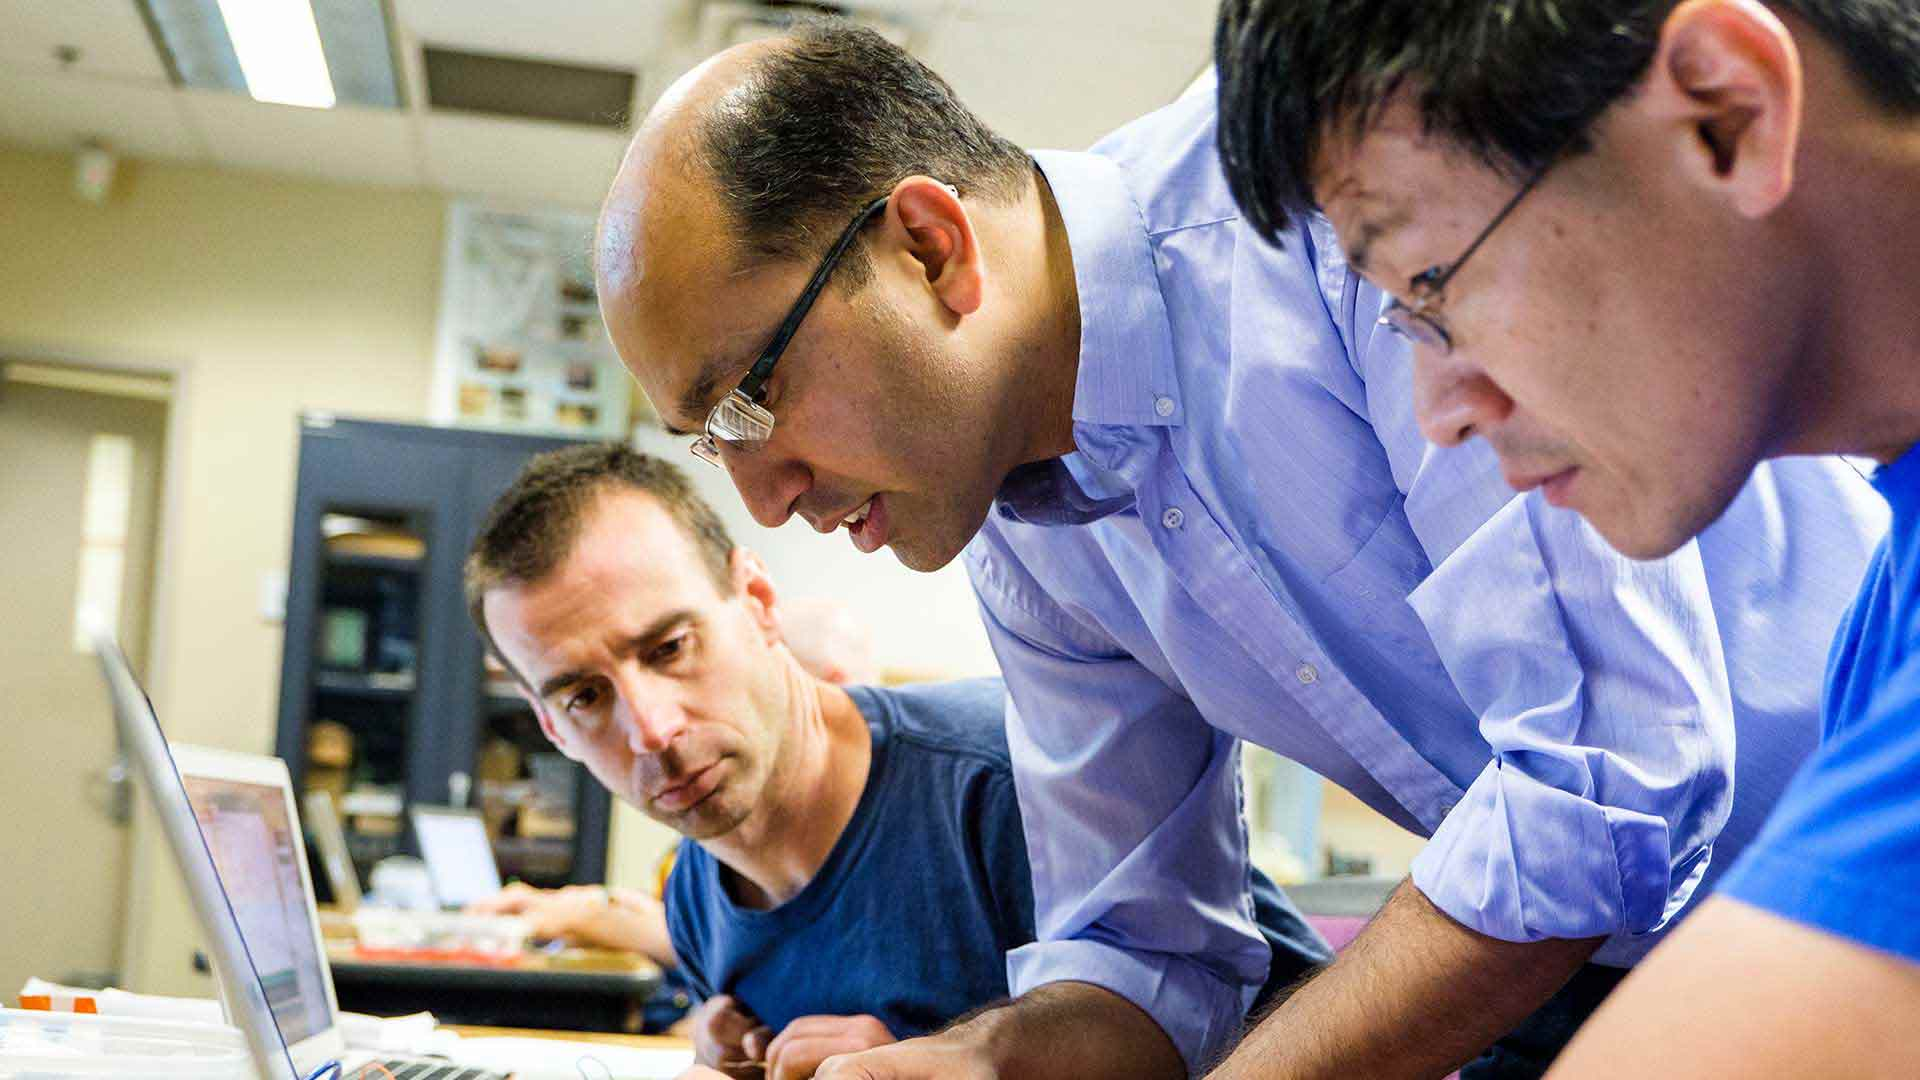 A University of St. Thomas engineering professor assists two students with some work.